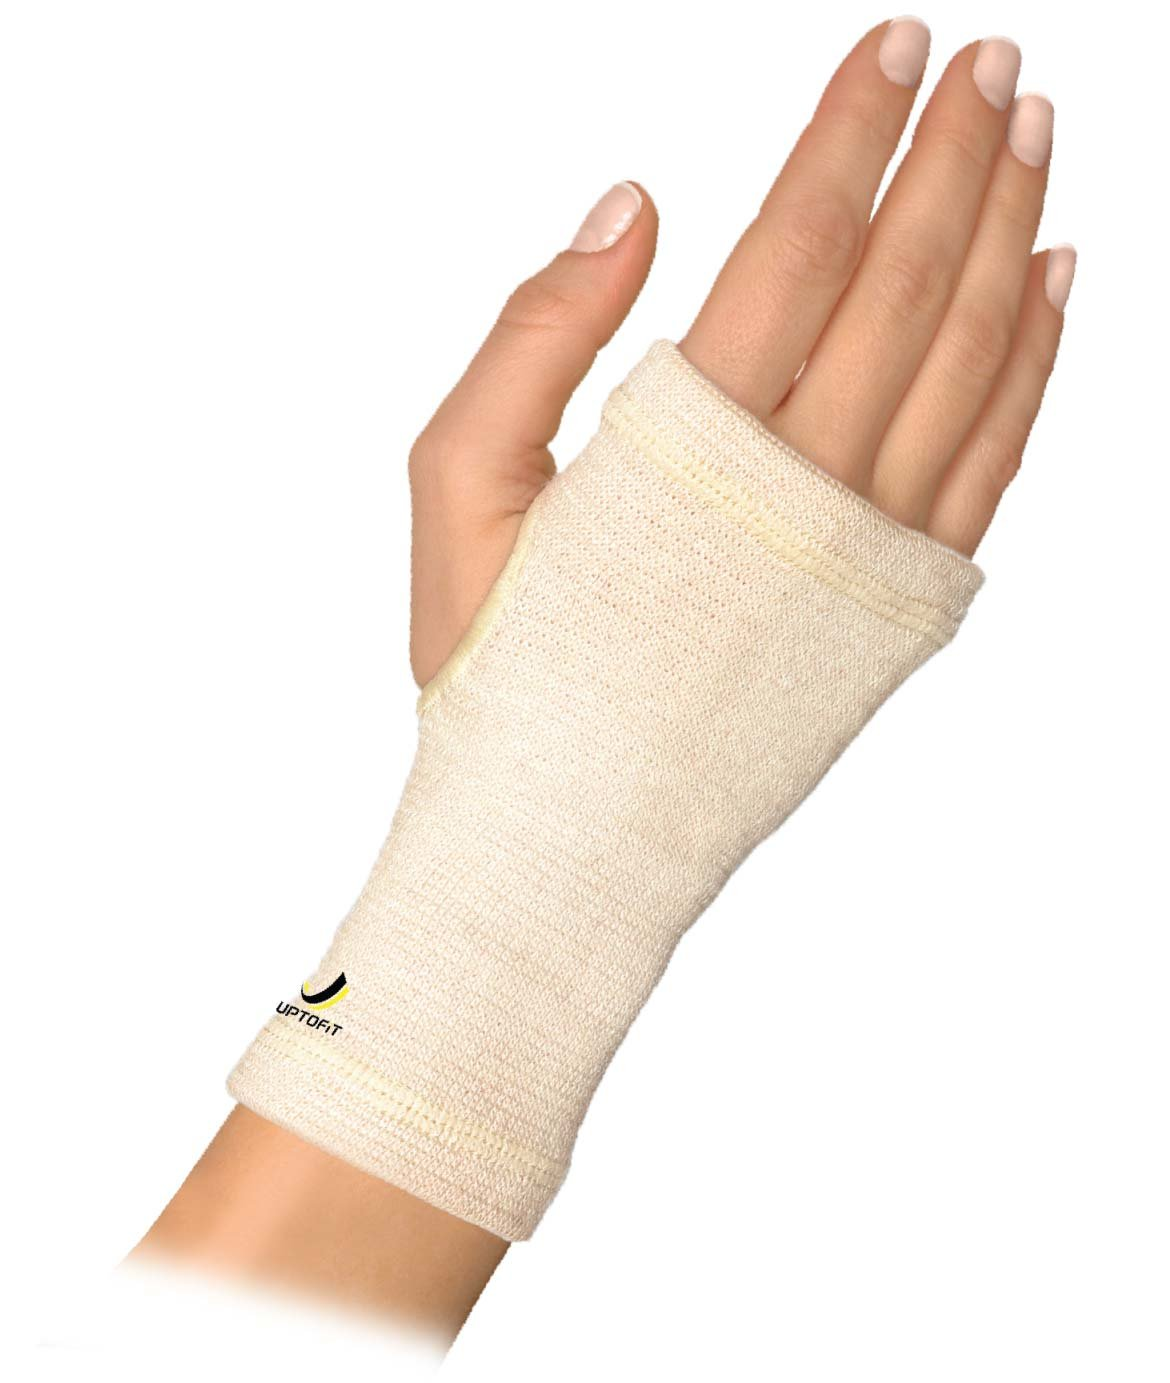 0211383f5e Amazon.com: UPTOFIT Copper Infused Wrist Sleeve Carpal Tunnel Compression  Hand Brace Lightweight Every Day and Night Support for Arthritis,Tendonitis  ...